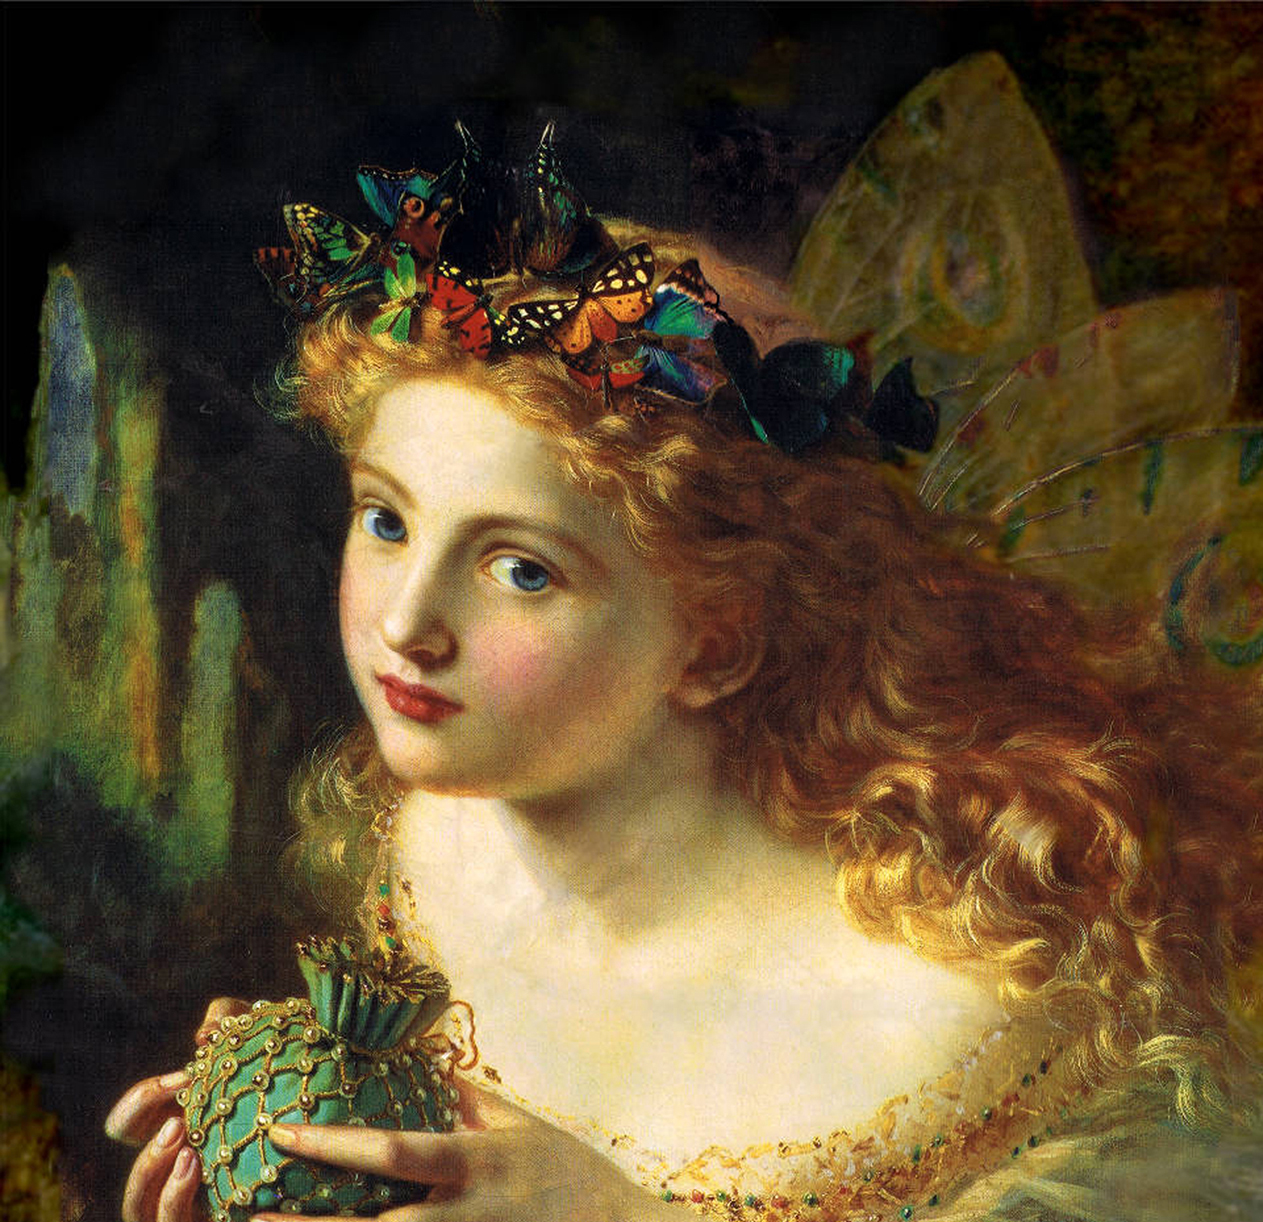 An 1869 portrait of a fairy by Sophie Gengembre Anderson.